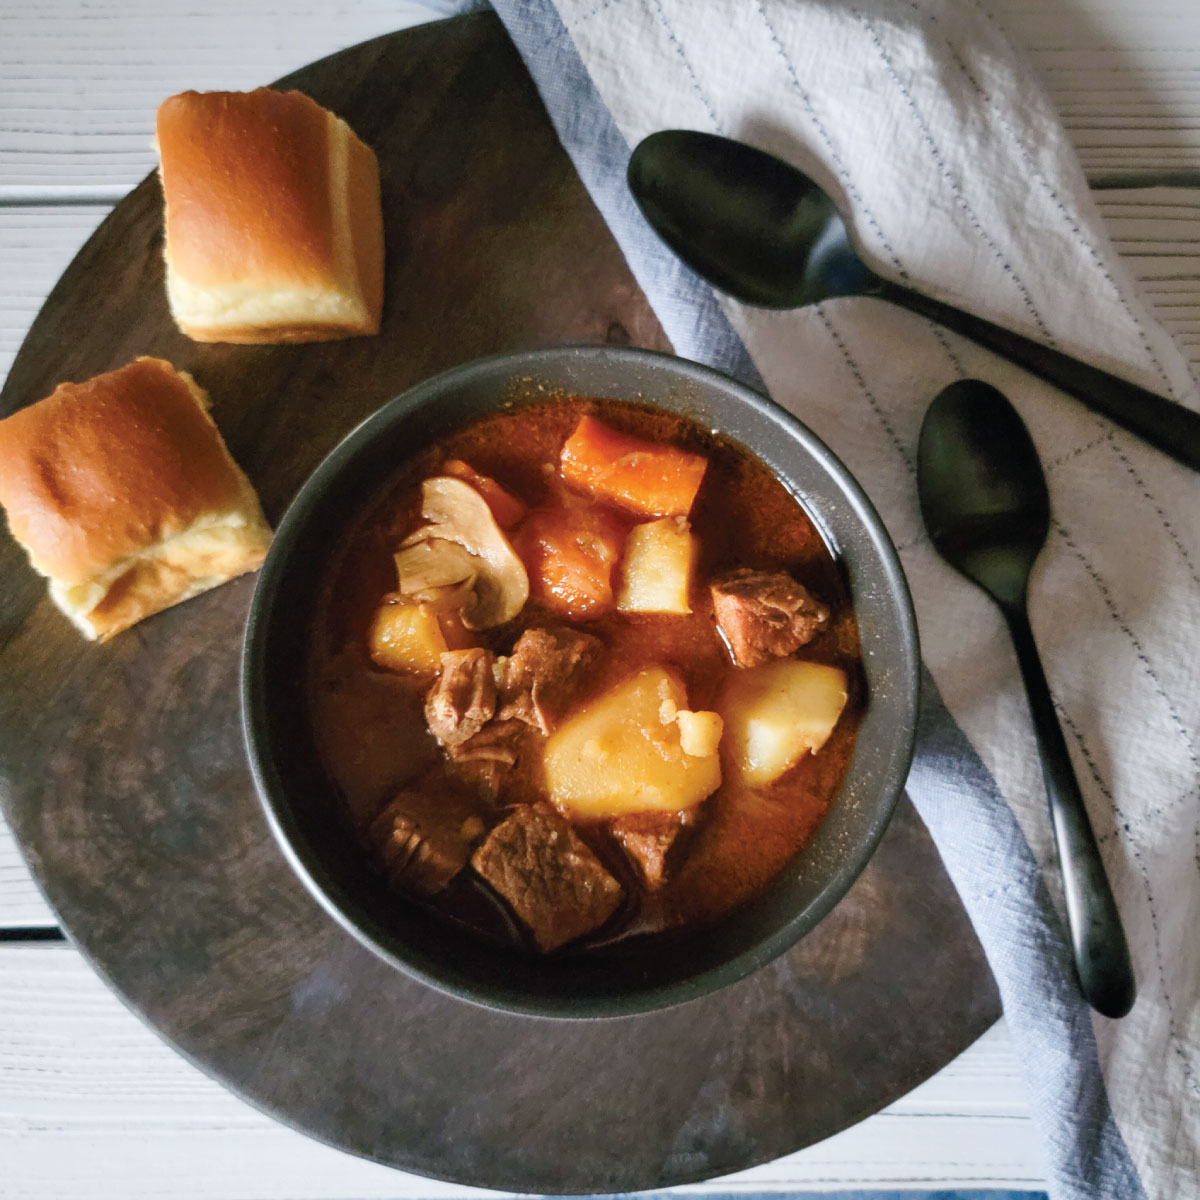 beef stew in a bowl ready to be served with 2 dinner rolls